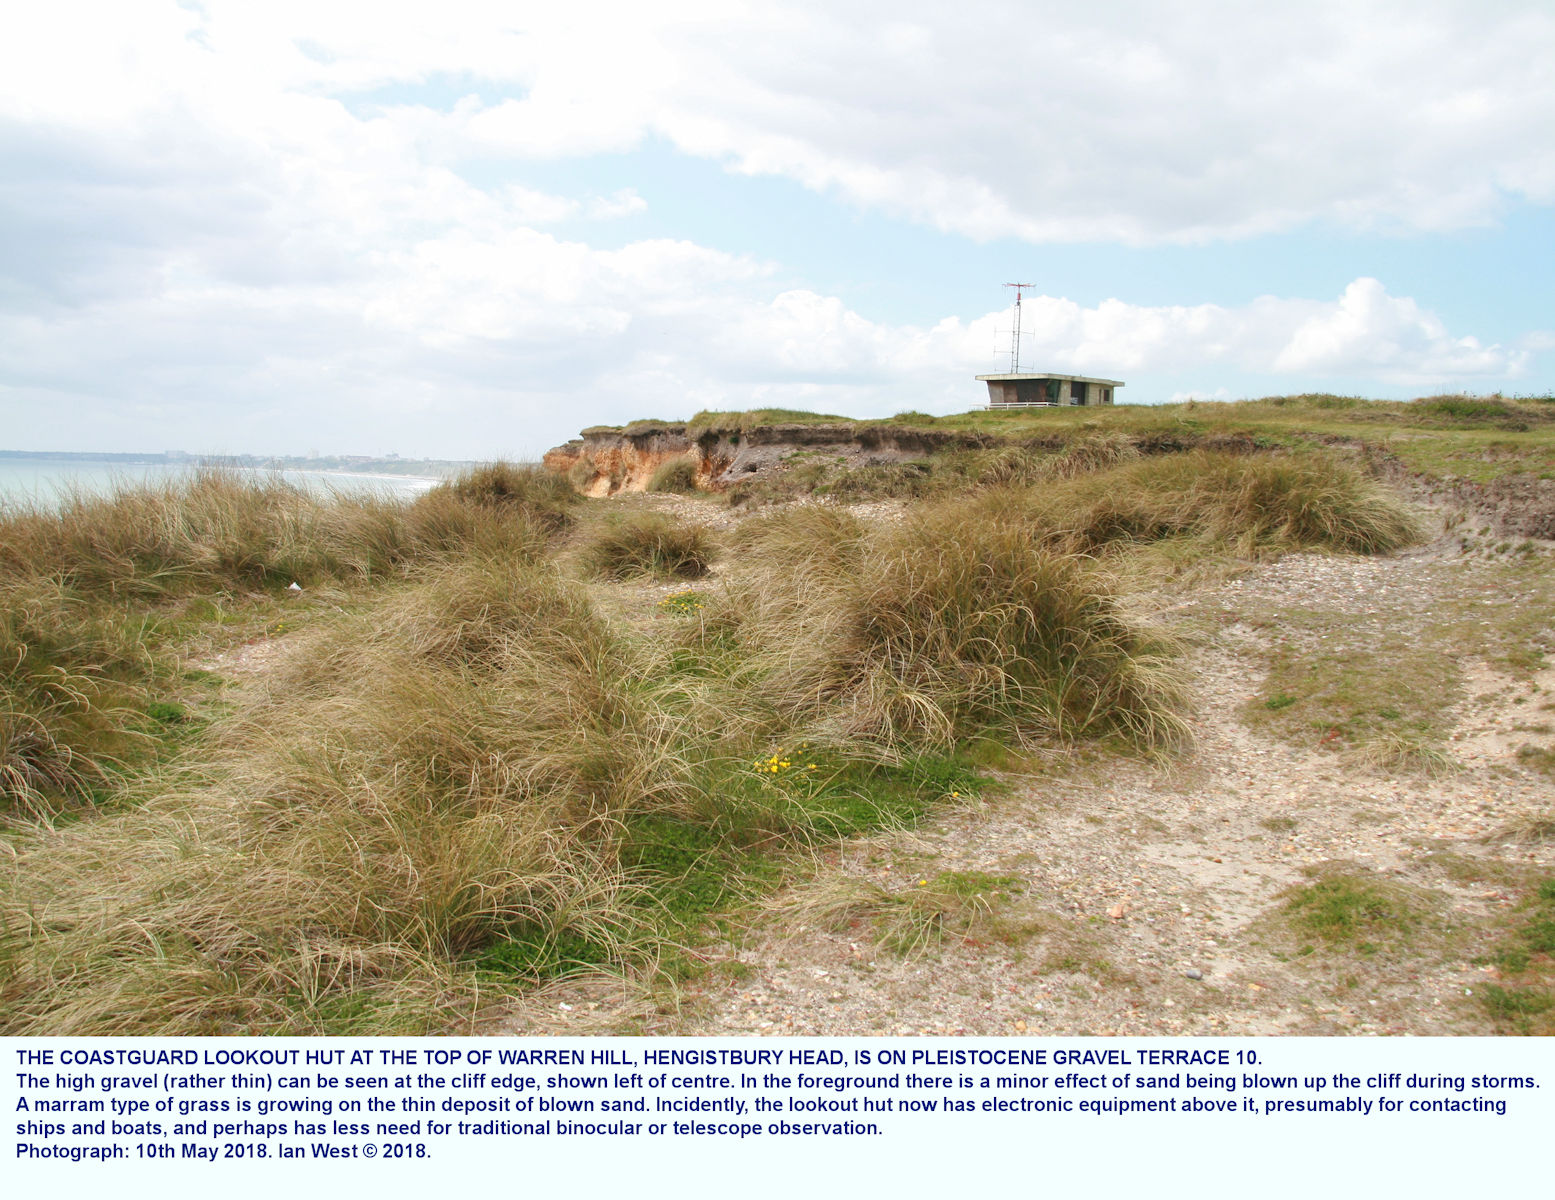 The coastguard lookout hut on the highest point of Warren Hill or Hengistbury Head, 10th May 2018